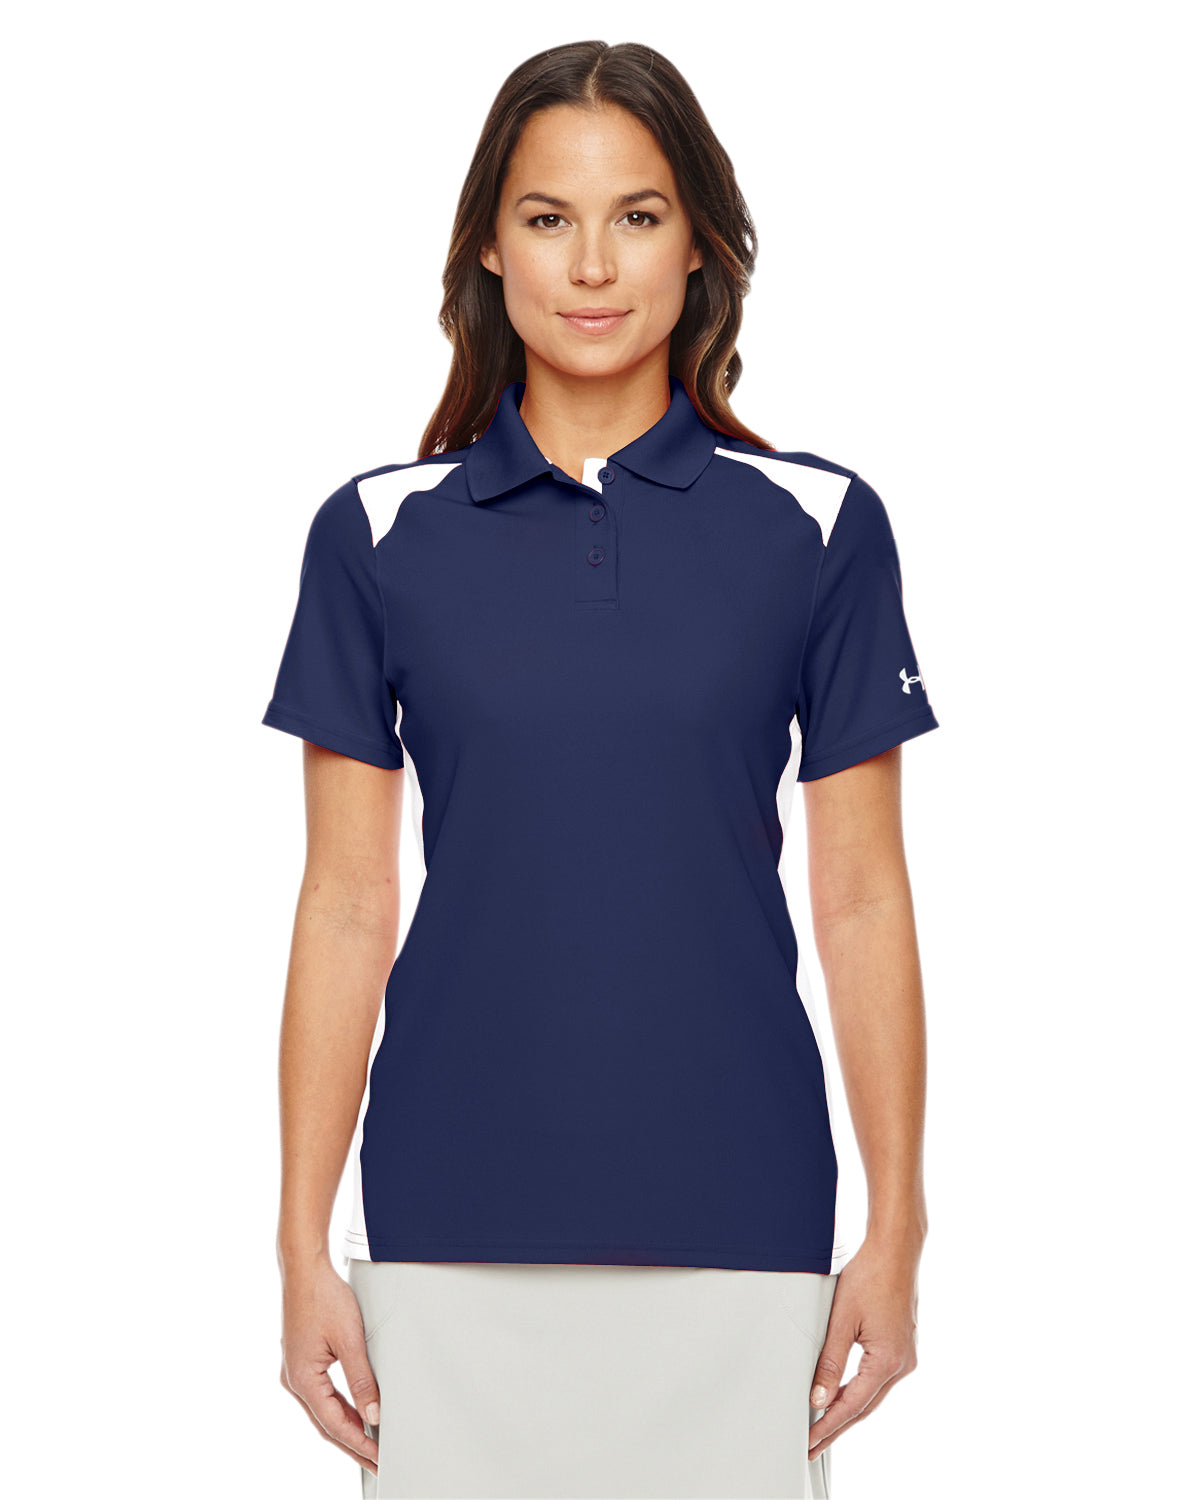 UNDER ARMOUR LADIES' TEAM COLORBLOCK POLO